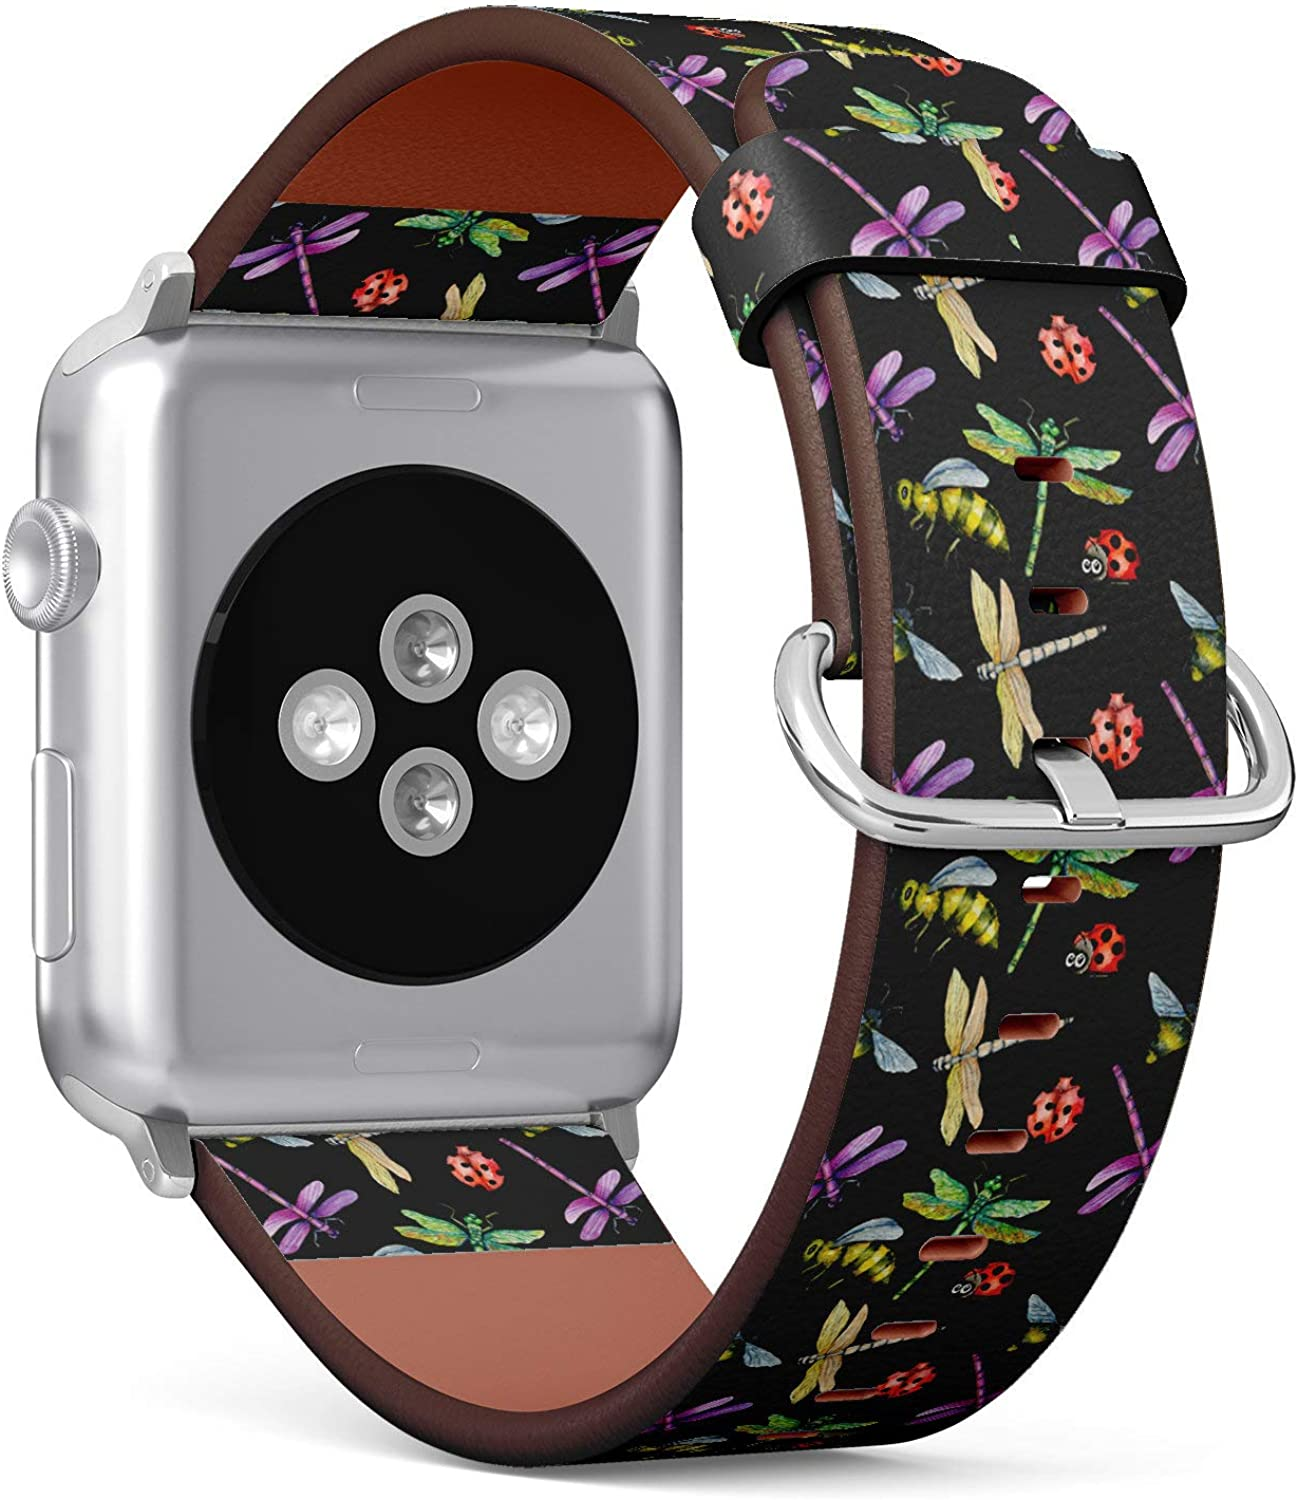 (Dragonfly, Ladybug and Bee Pattern) Patterned Leather Wristband Strap Compatible with Apple Watch Series 4/3/2/1 gen,Replacement of iWatch 38mm / 40mm Bands